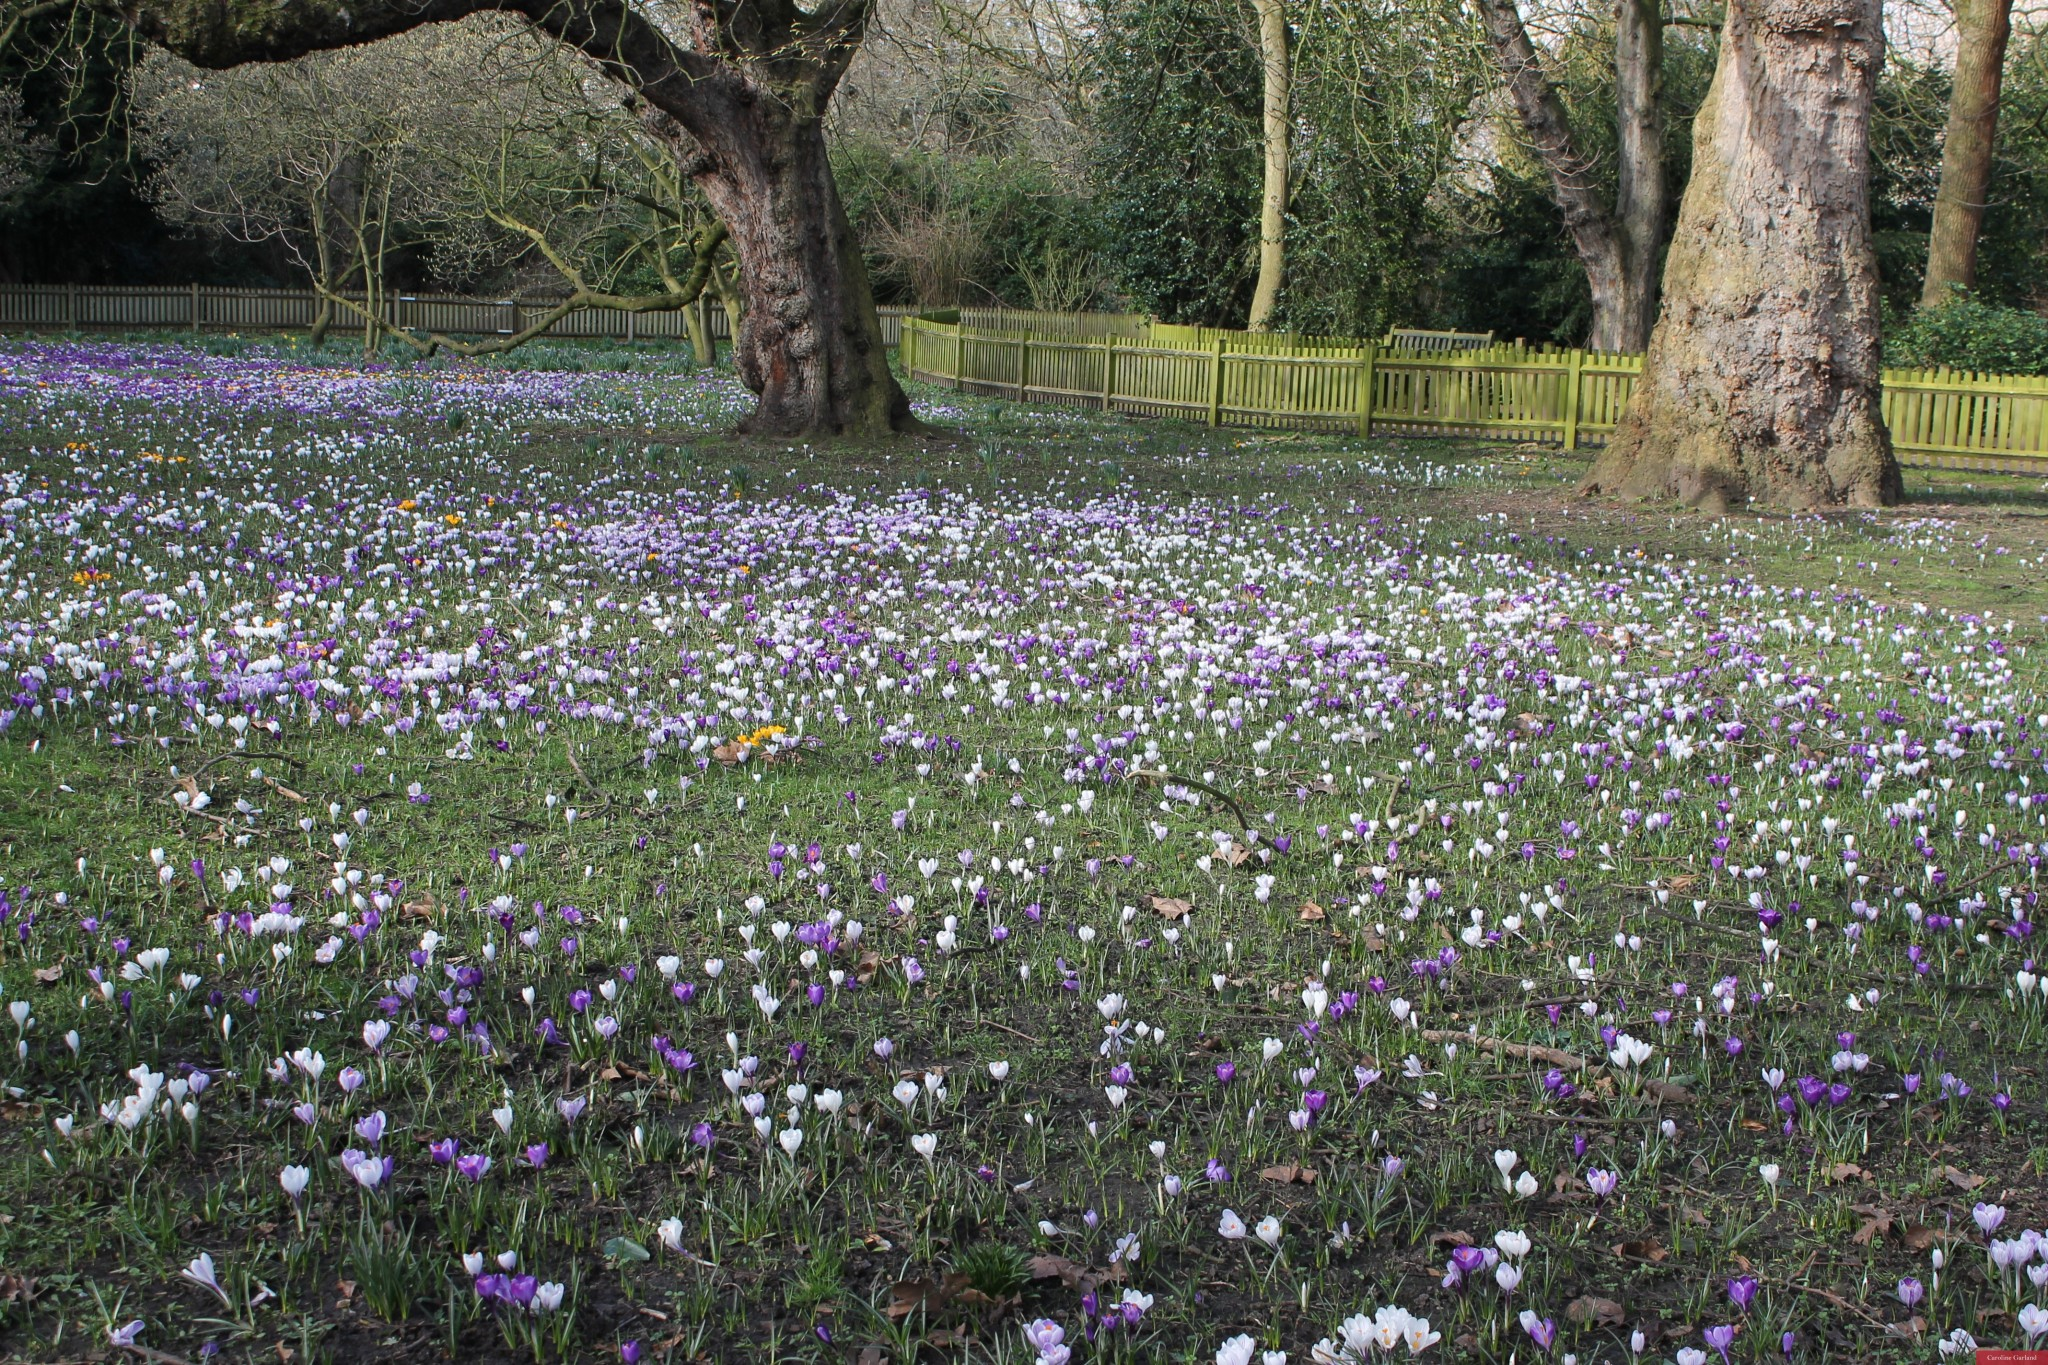 Battersea Park with a crocus overload!